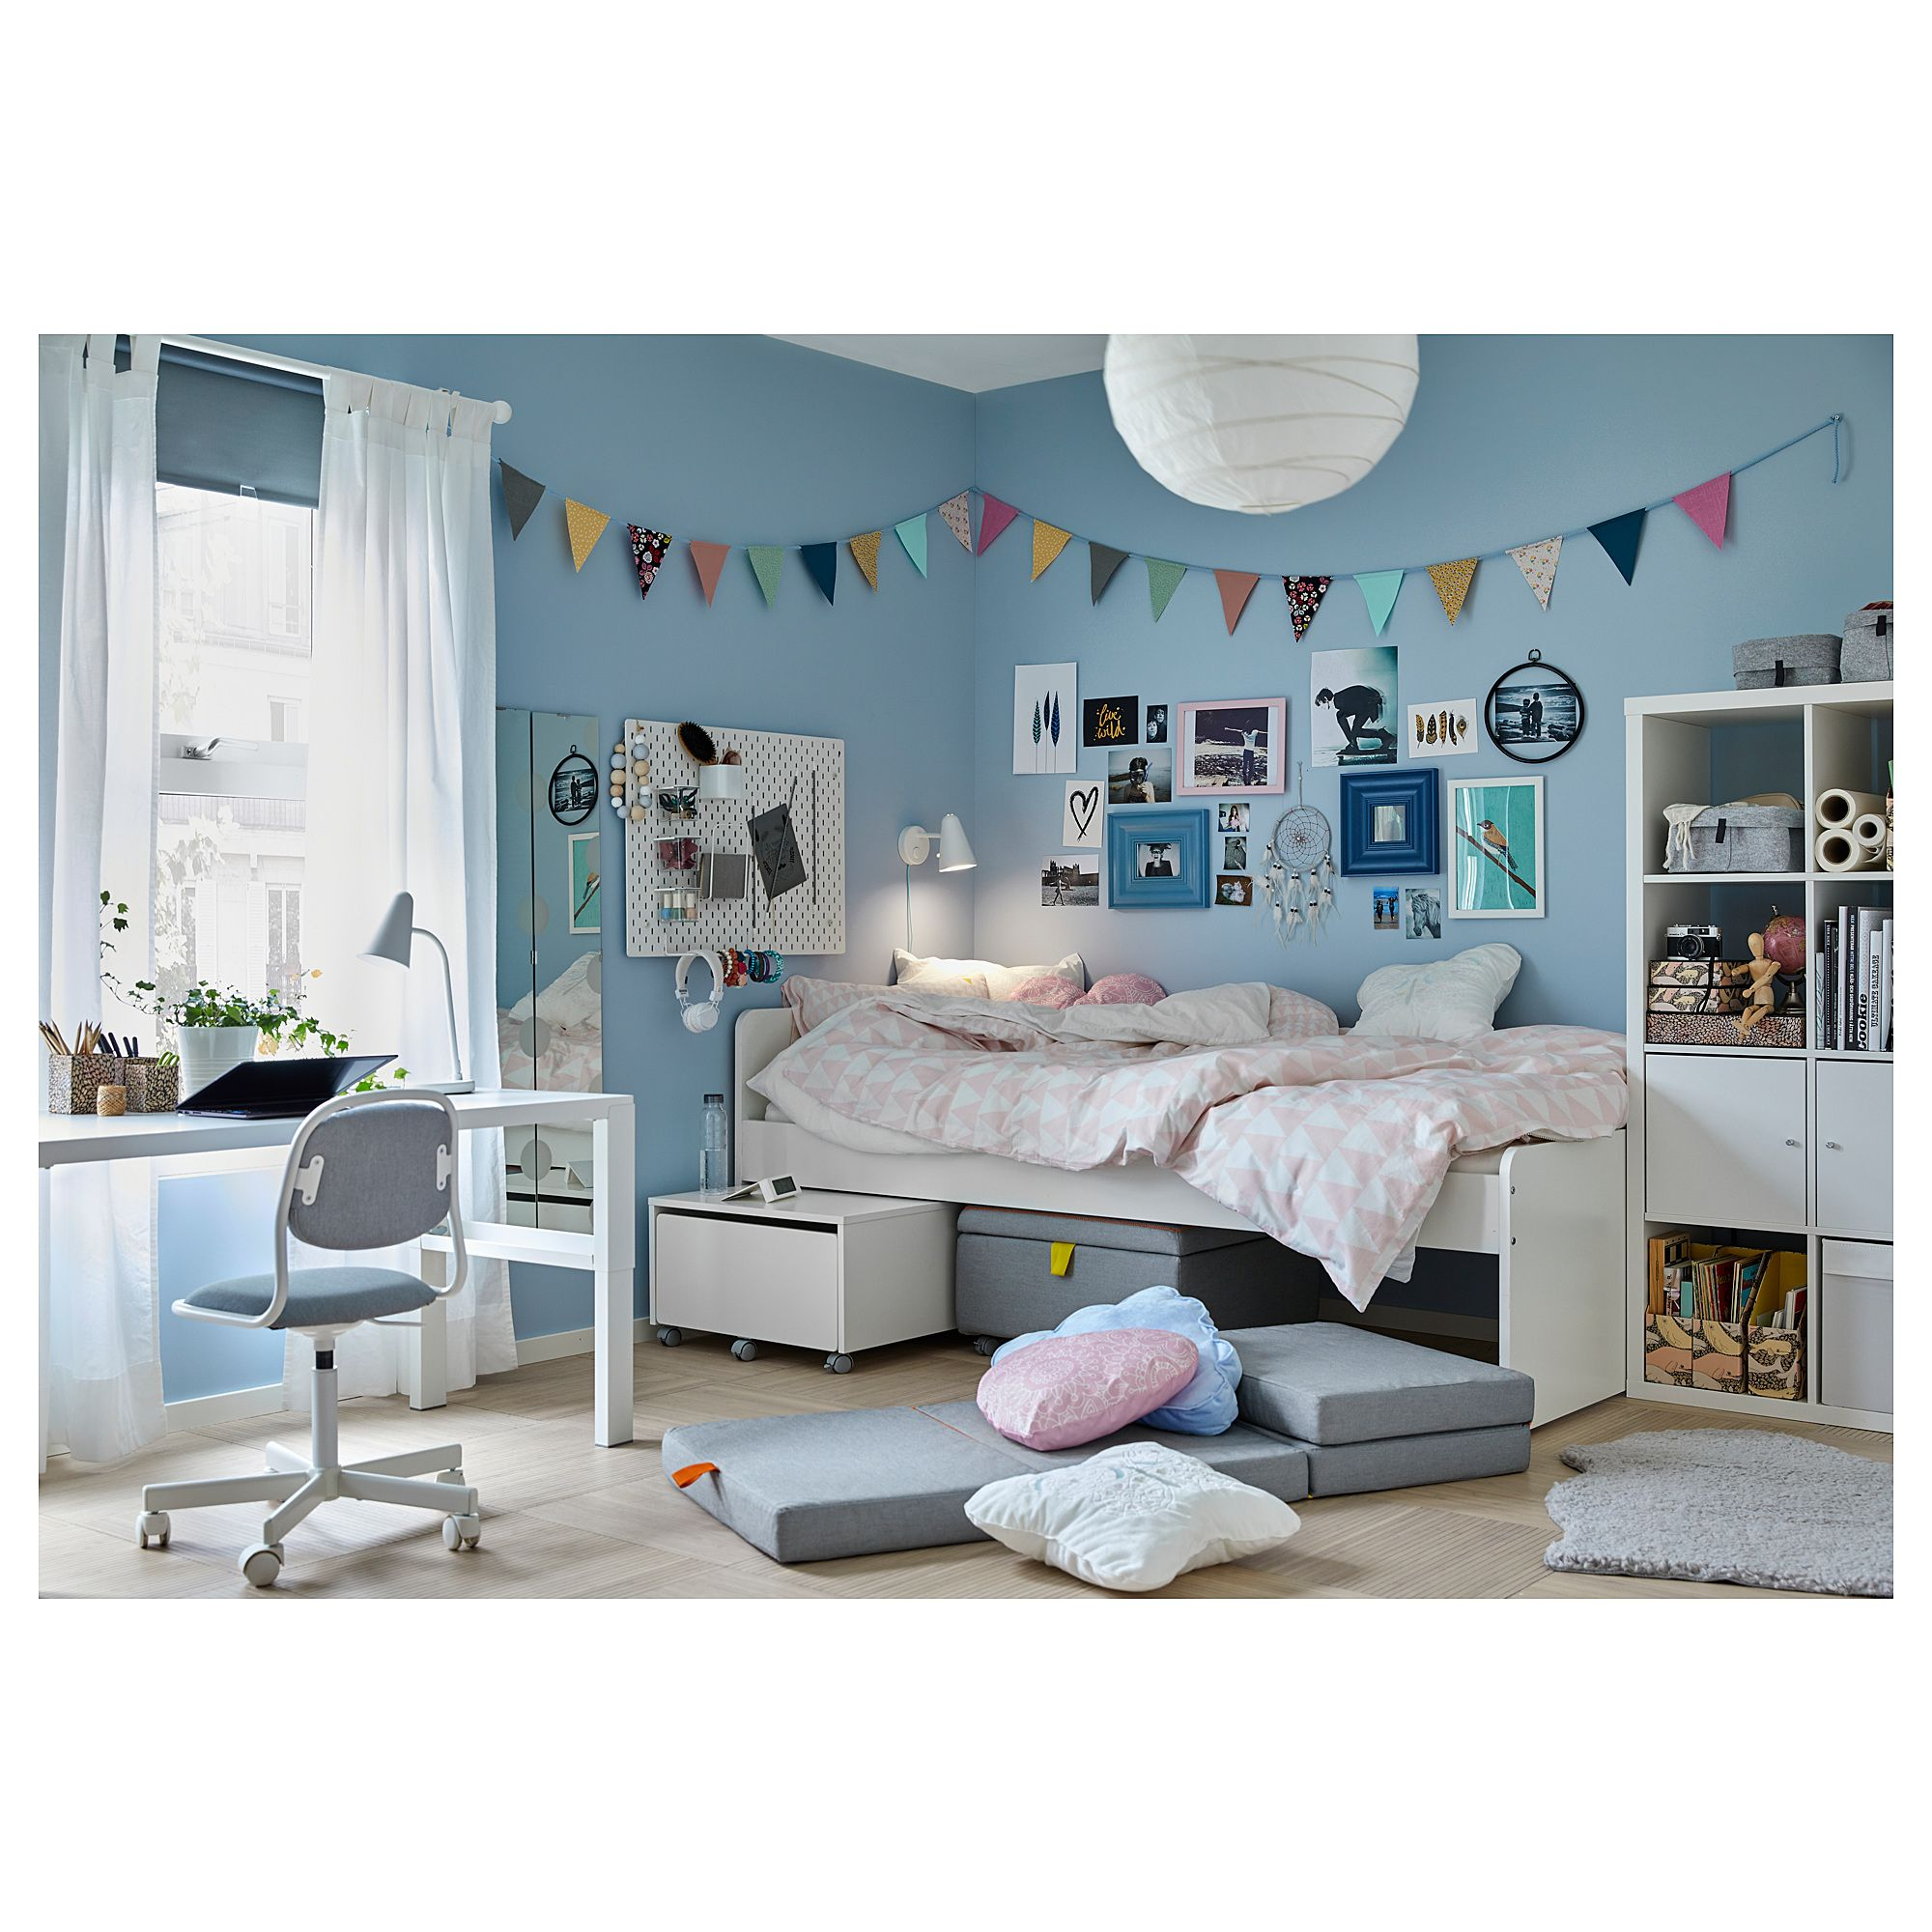 Sedia Junior Ikea SlÄkt Bed Frame With Slatted Bed Base White In 2019 Dorm Ikea